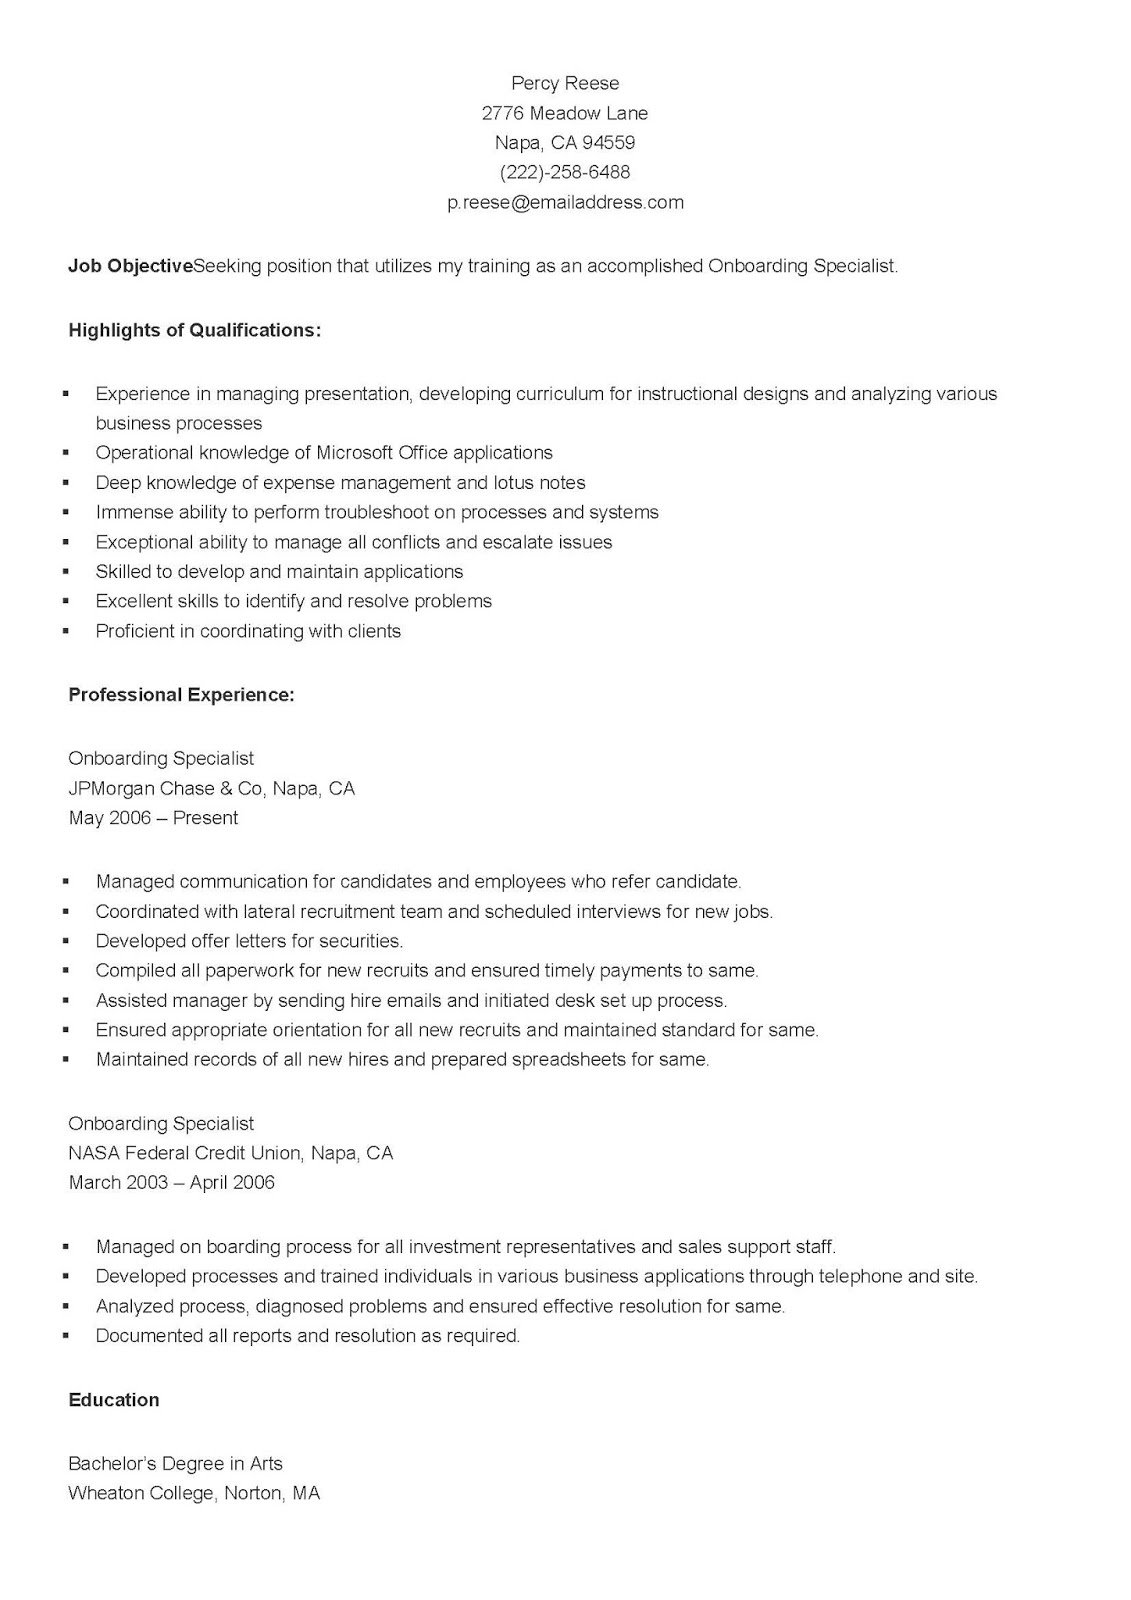 Onboarding Specialist Cover Letter adoption specialist cover letter